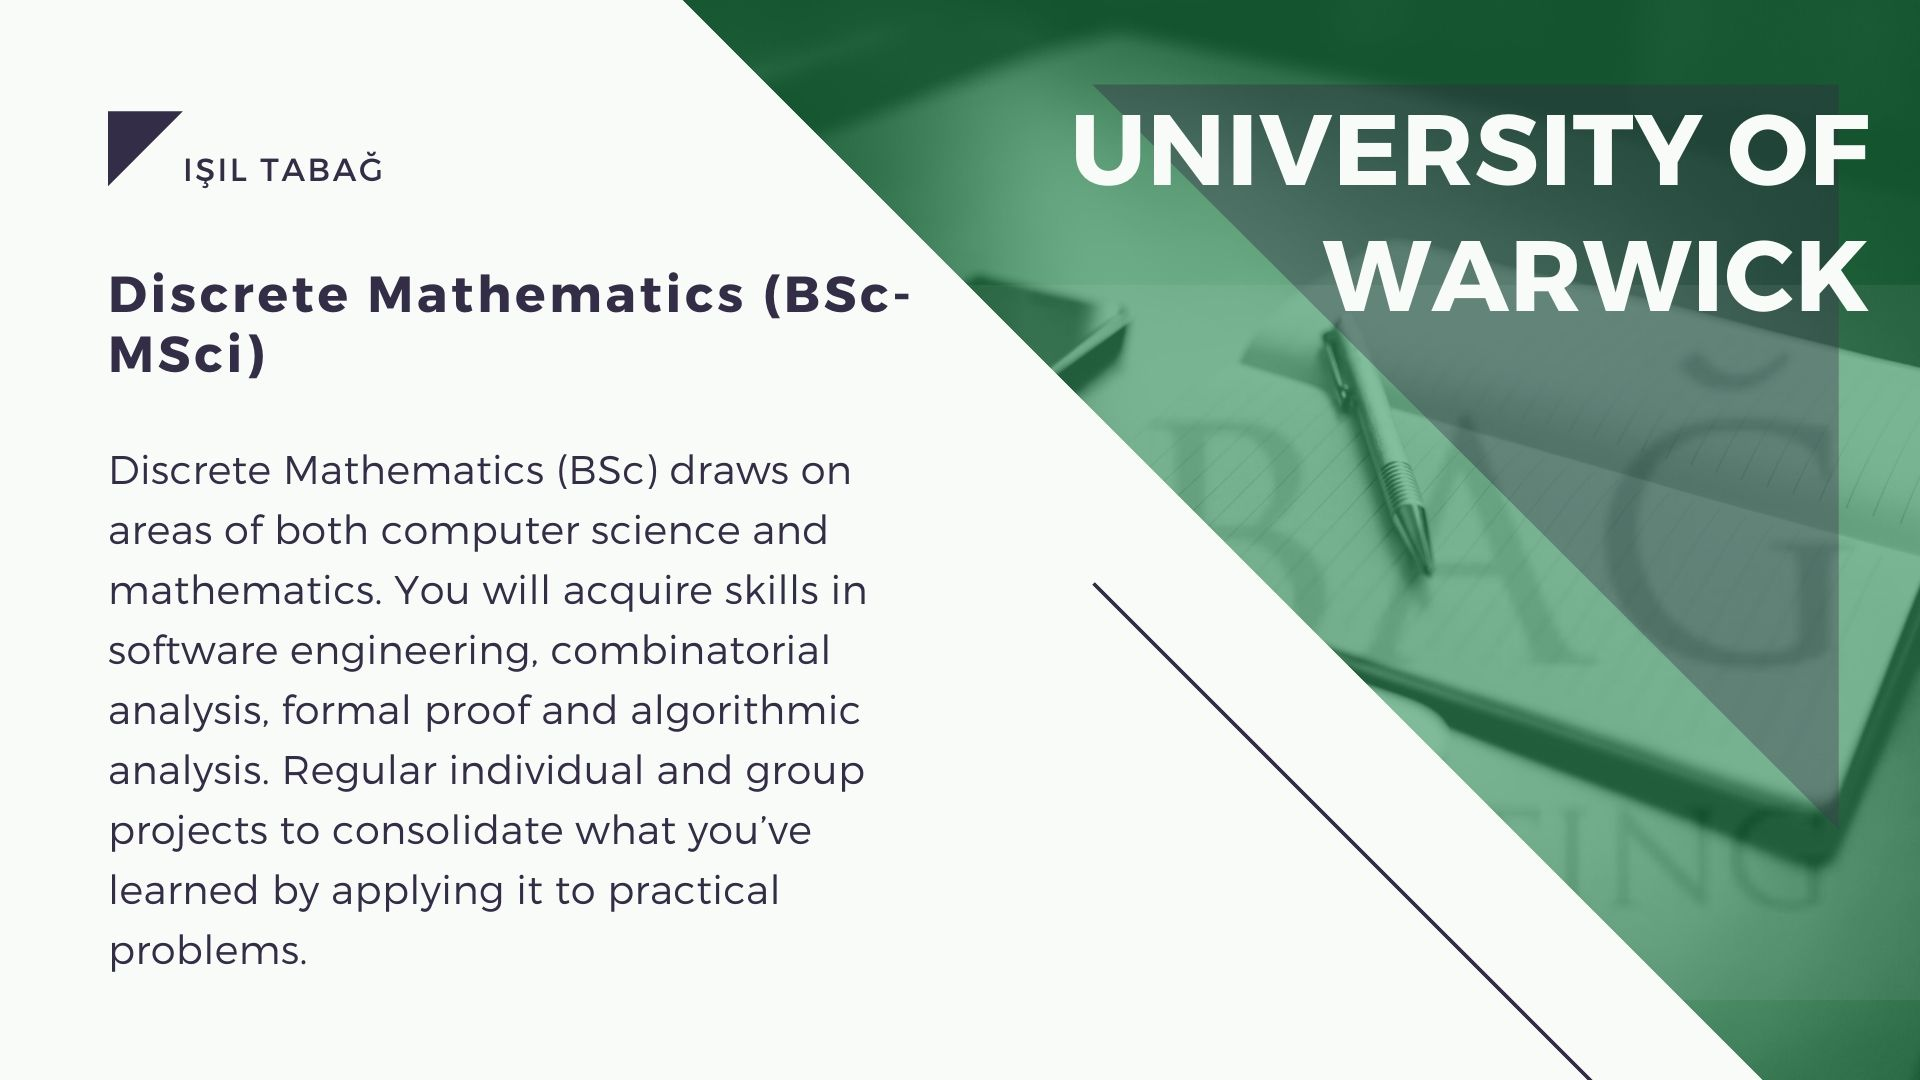 University of Warwick Discrete Mathematics Isil Tabag